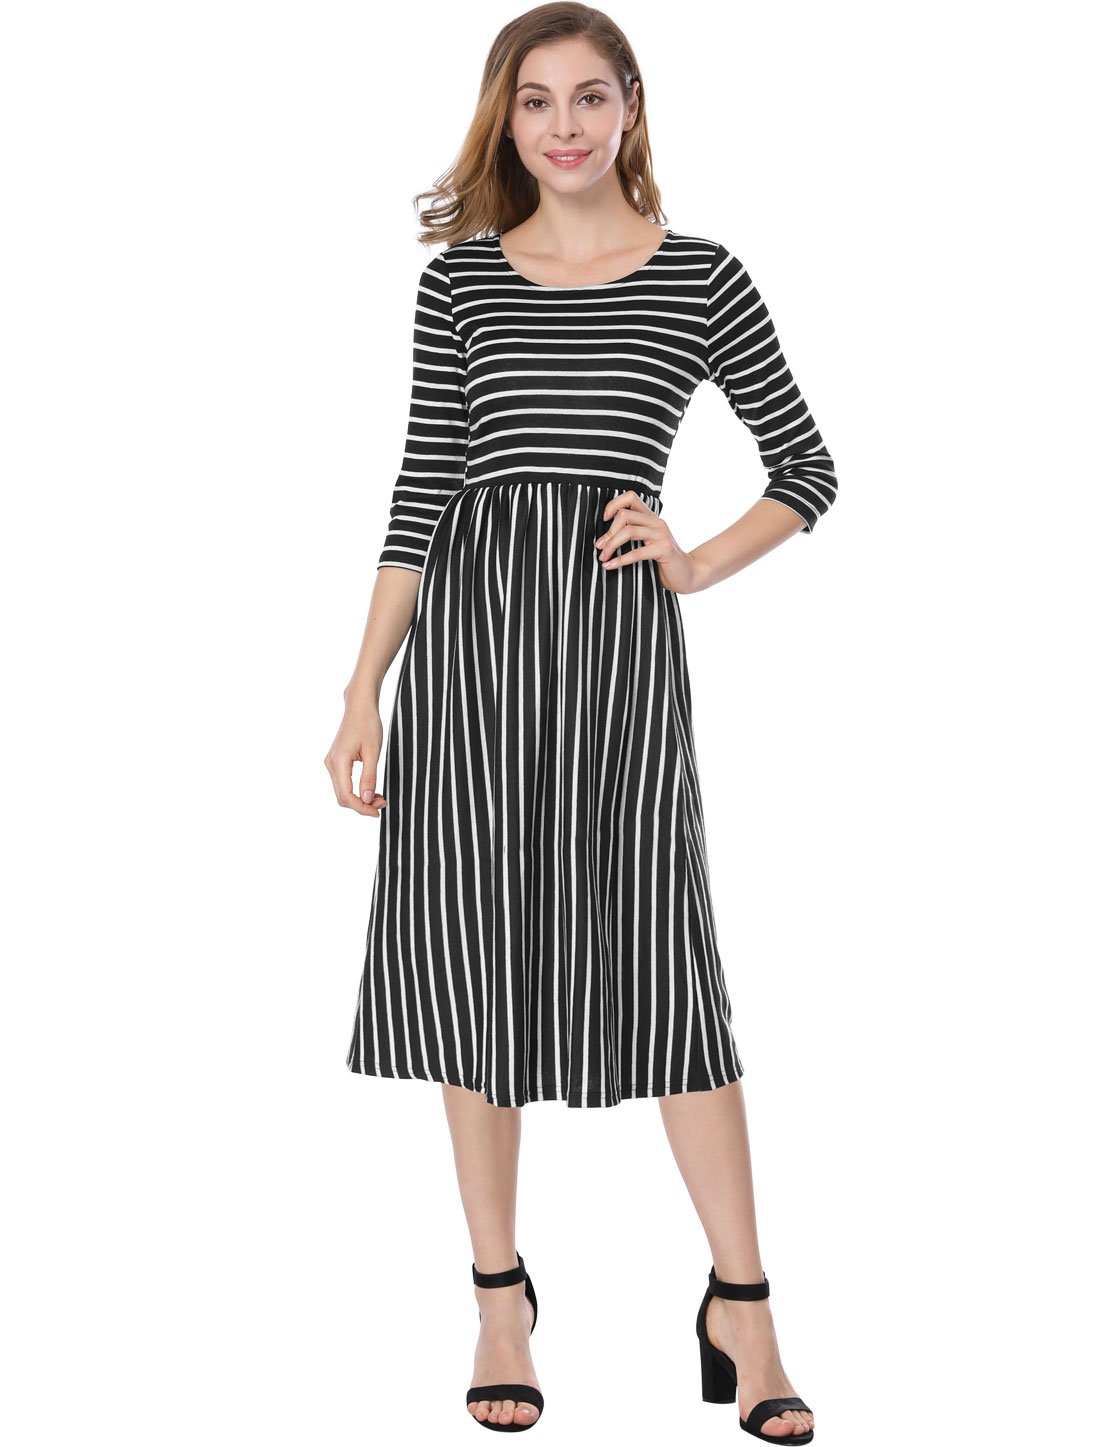 Allegra K Womens Contrast Striped 3//4 Sleeves Paneled Midi Flared Dress s18040800it0496